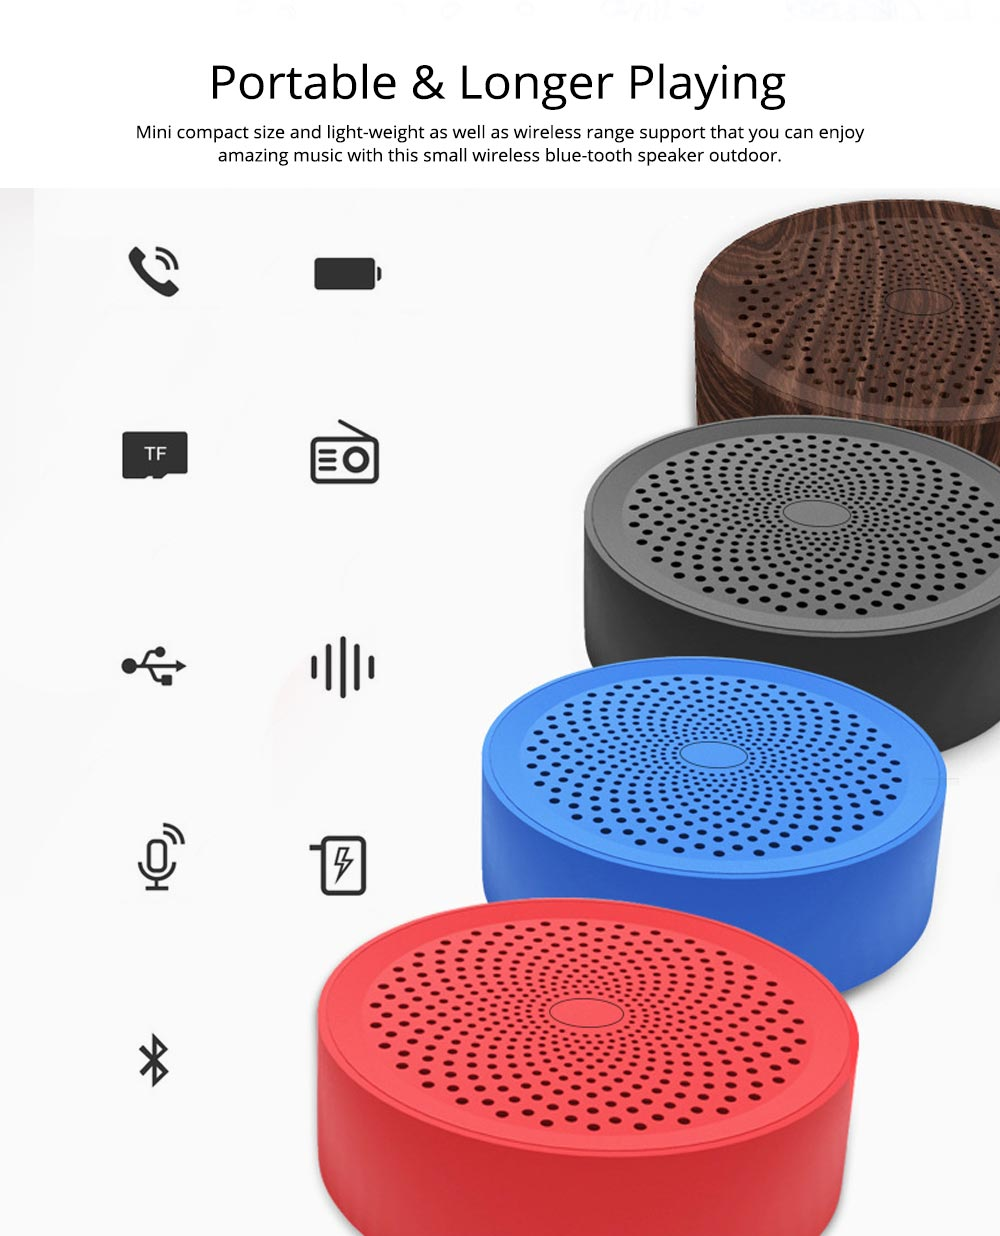 Portable Outdoor Bluetooth Speaker, Wireless Mini Card Speaker for iPhone iPad PC 5